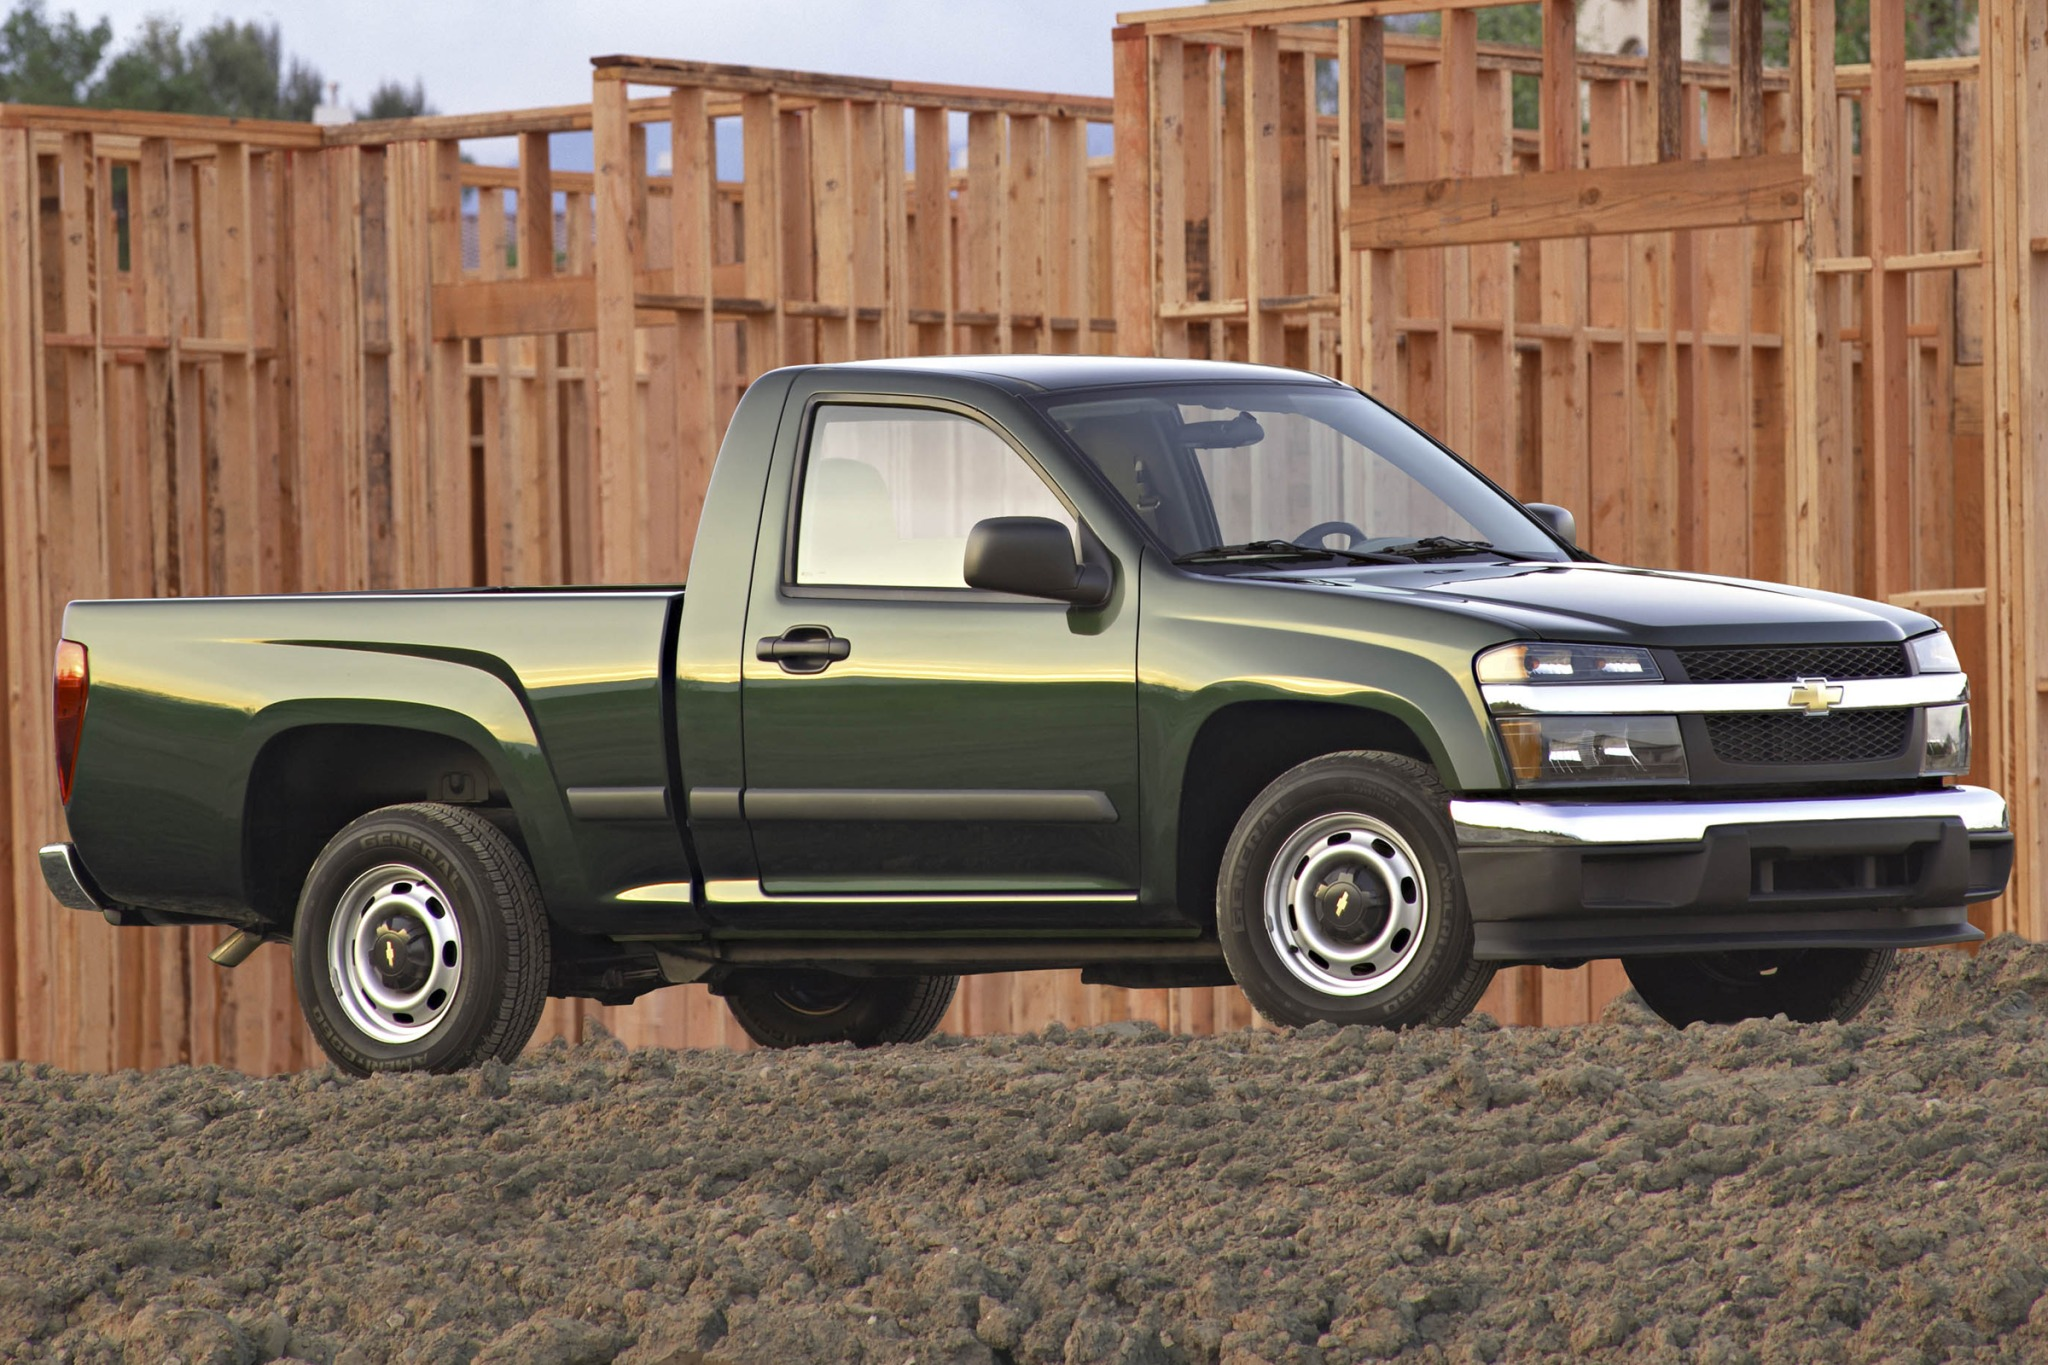 2007 chevrolet colorado 9 2007 chevrolet colorado l exterior 9